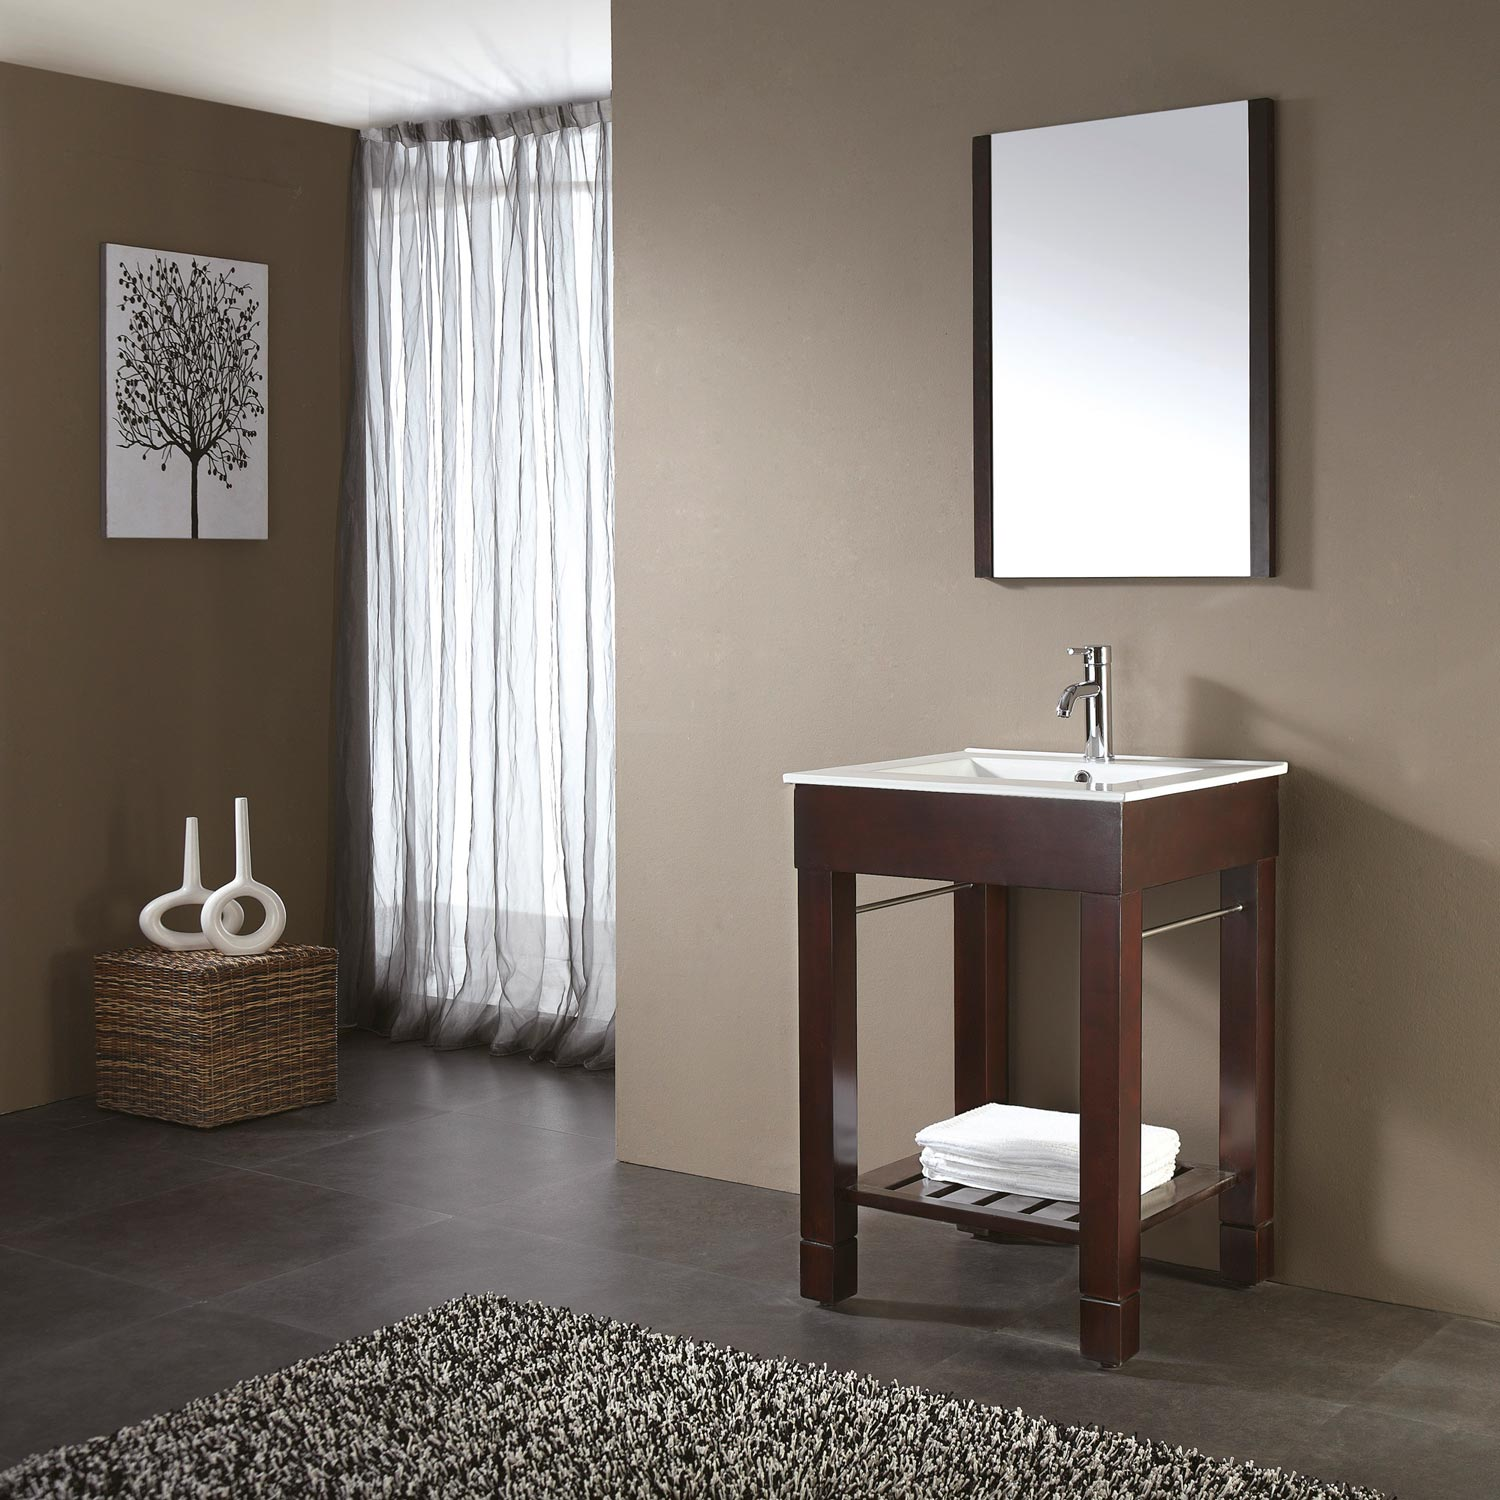 Small Oak Bathroom Vanity and White Sink under Clear Wall Mirror on Grey Painted Wall